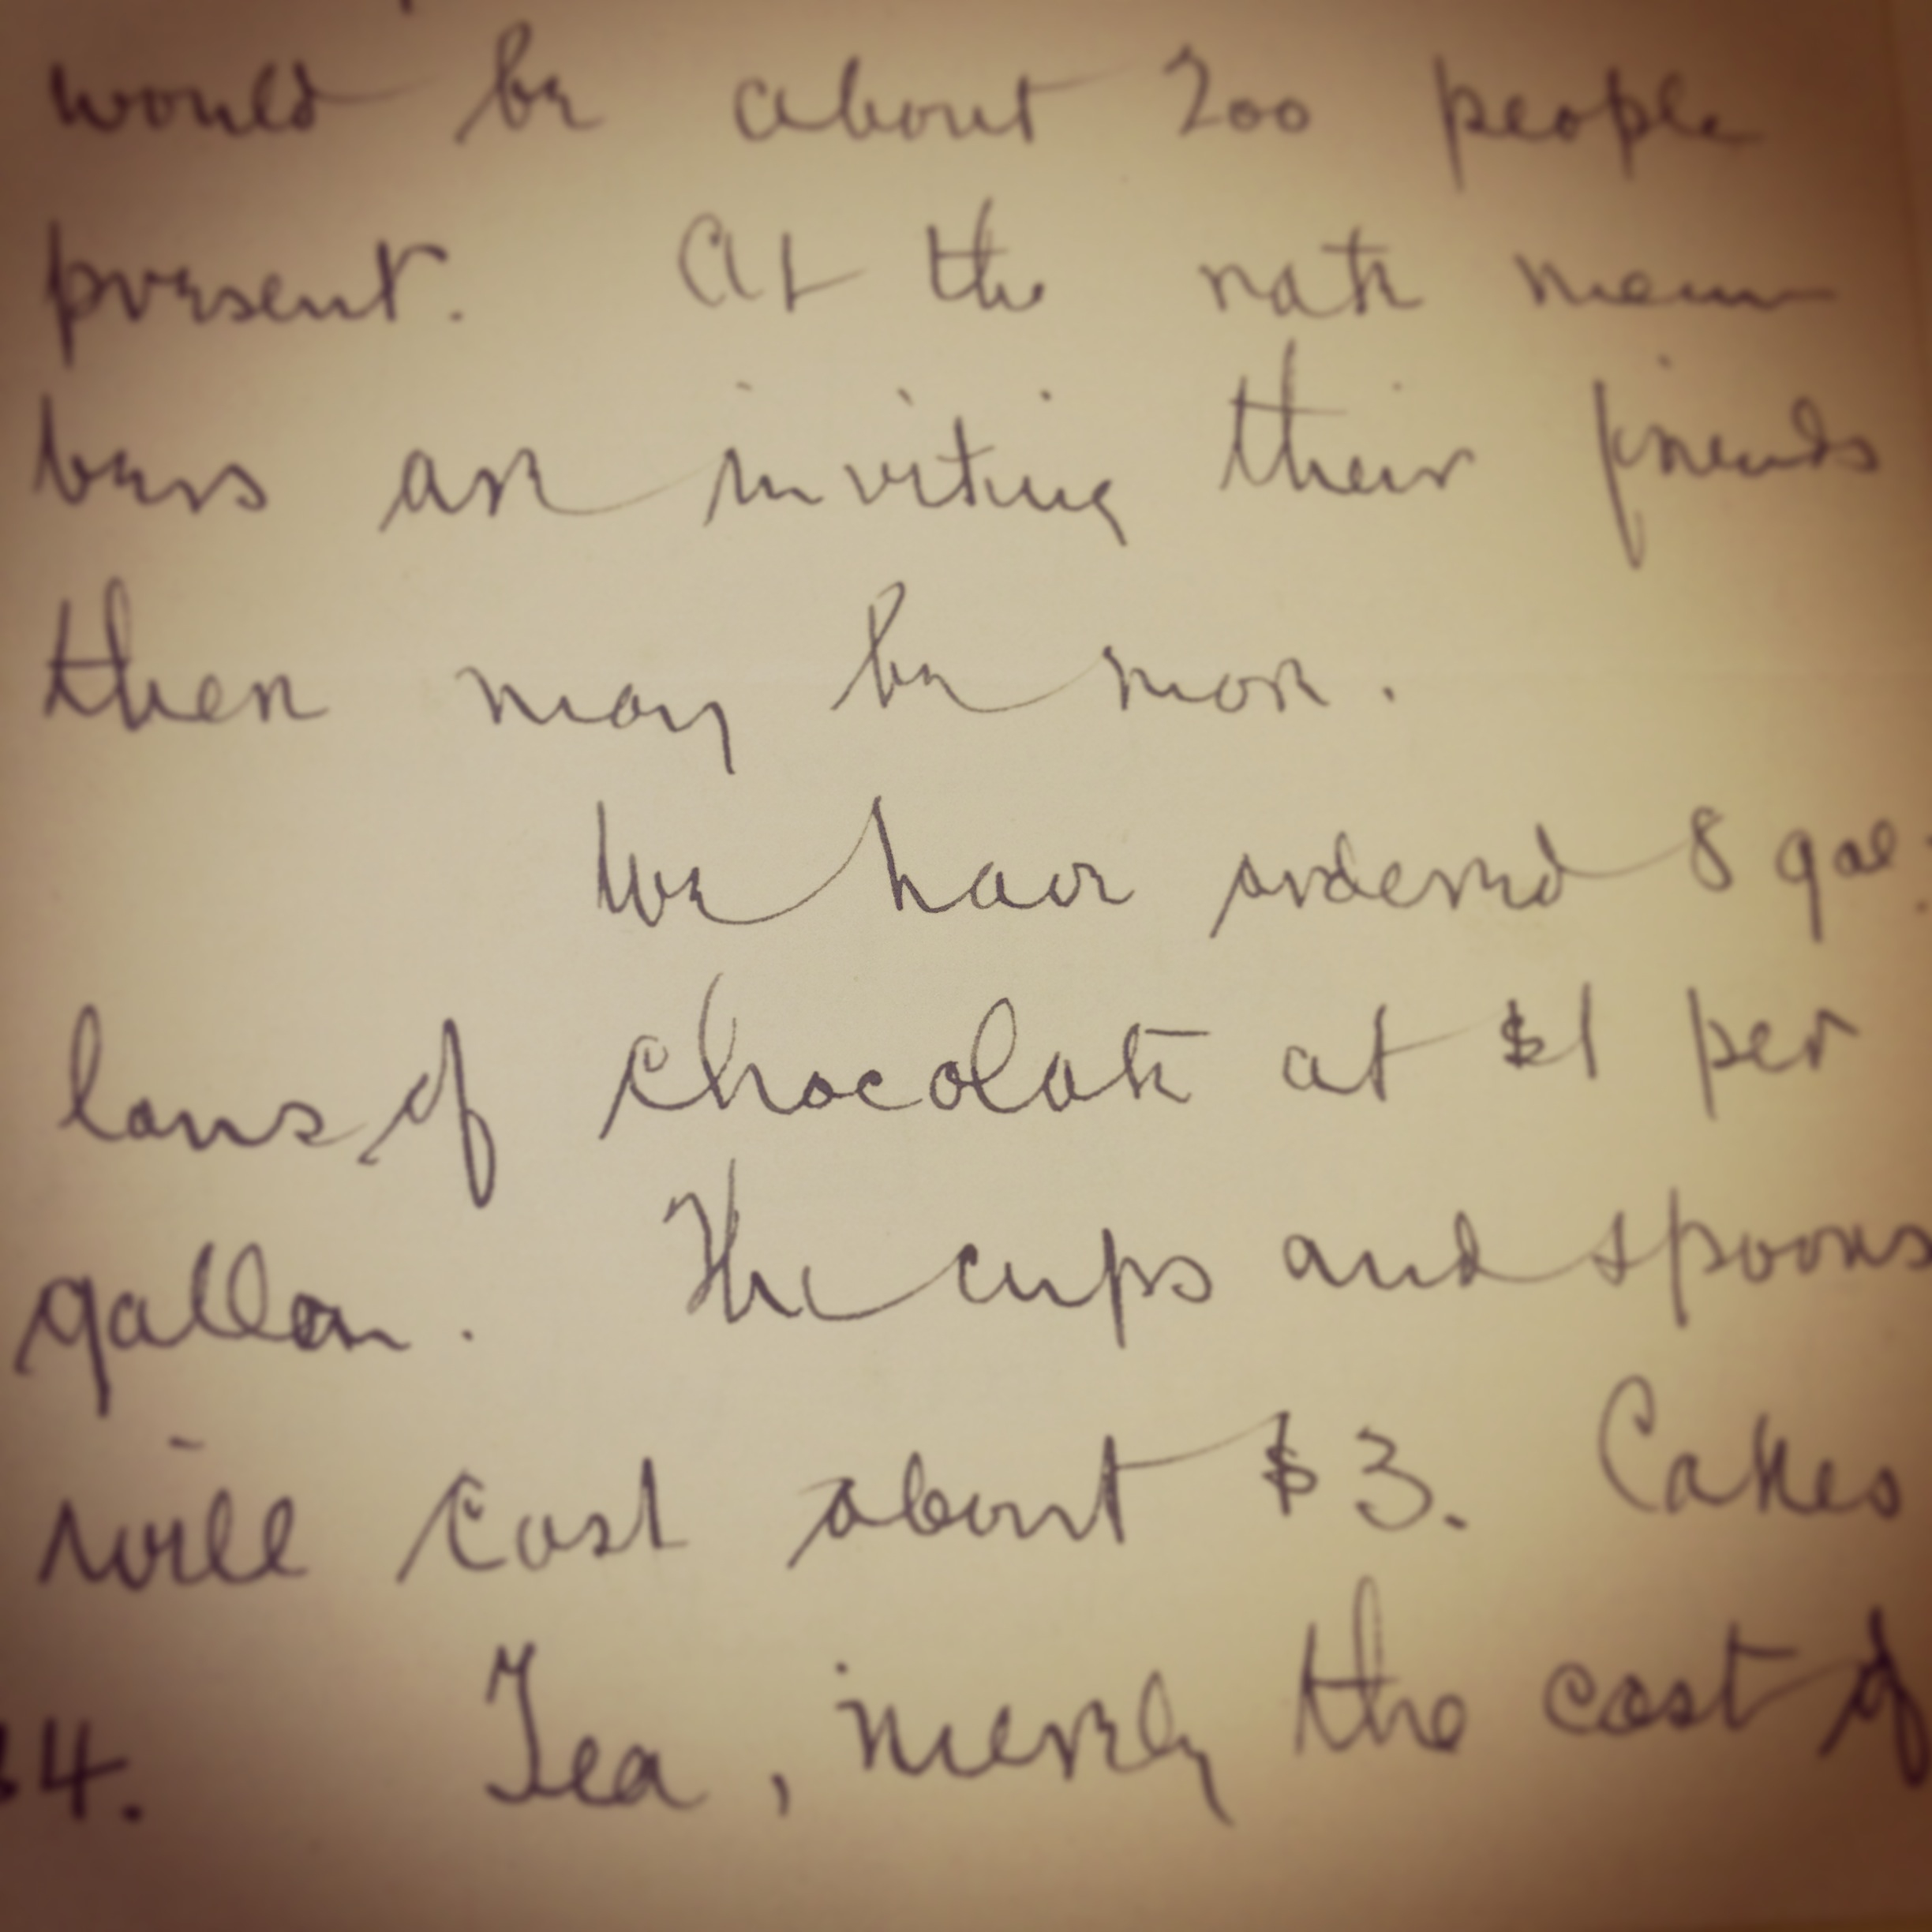 A letter written in the early 1900s. They bought a lot of hot chocolate for needy families!